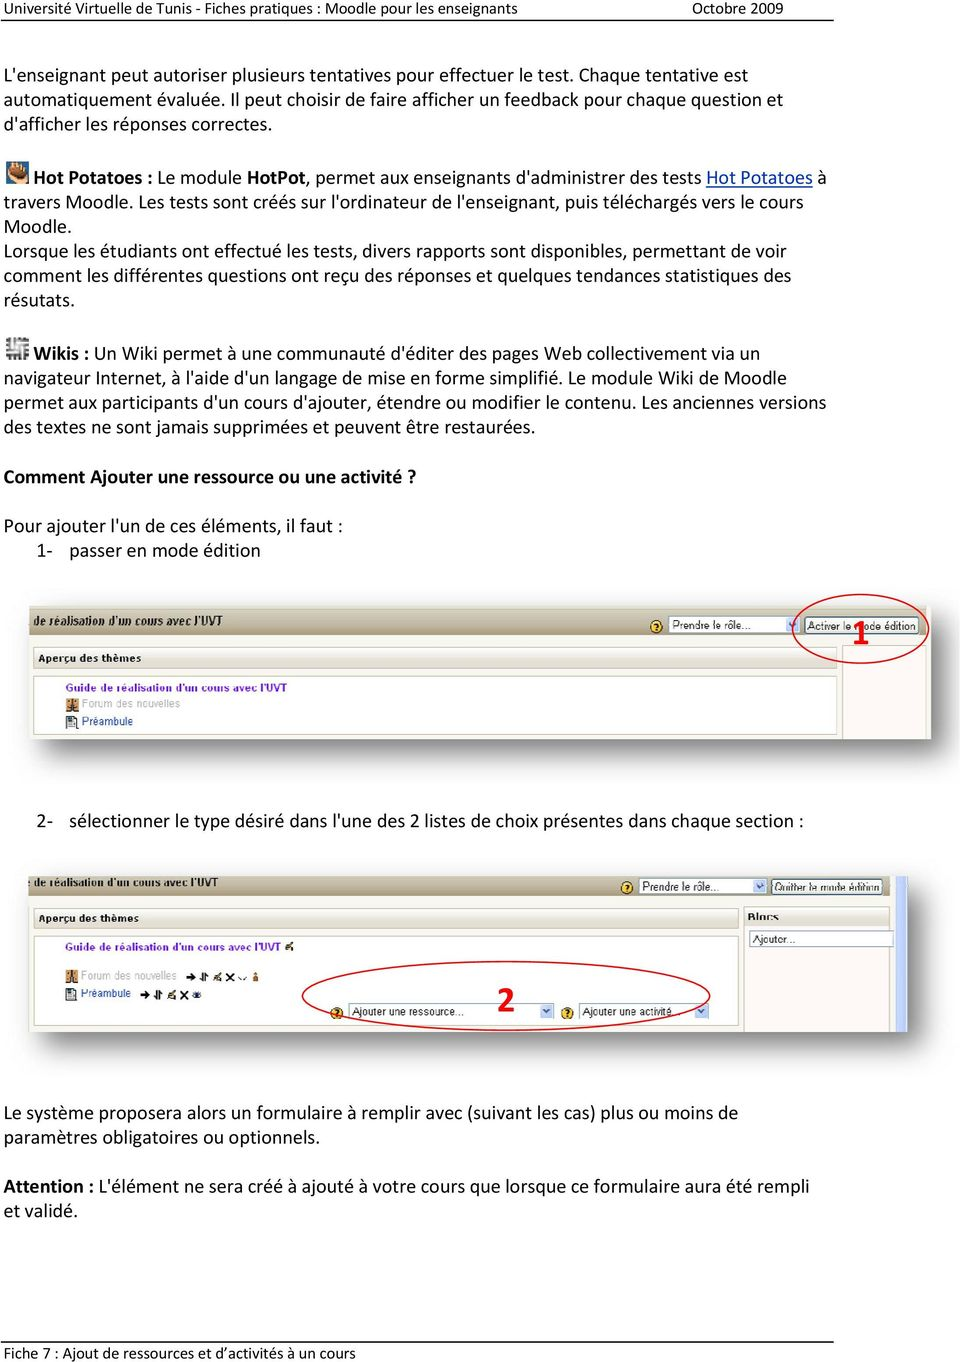 Hot Potatoes : Le module HotPot, permet aux enseignants d'administrer des tests Hot Potatoes à travers Moodle.